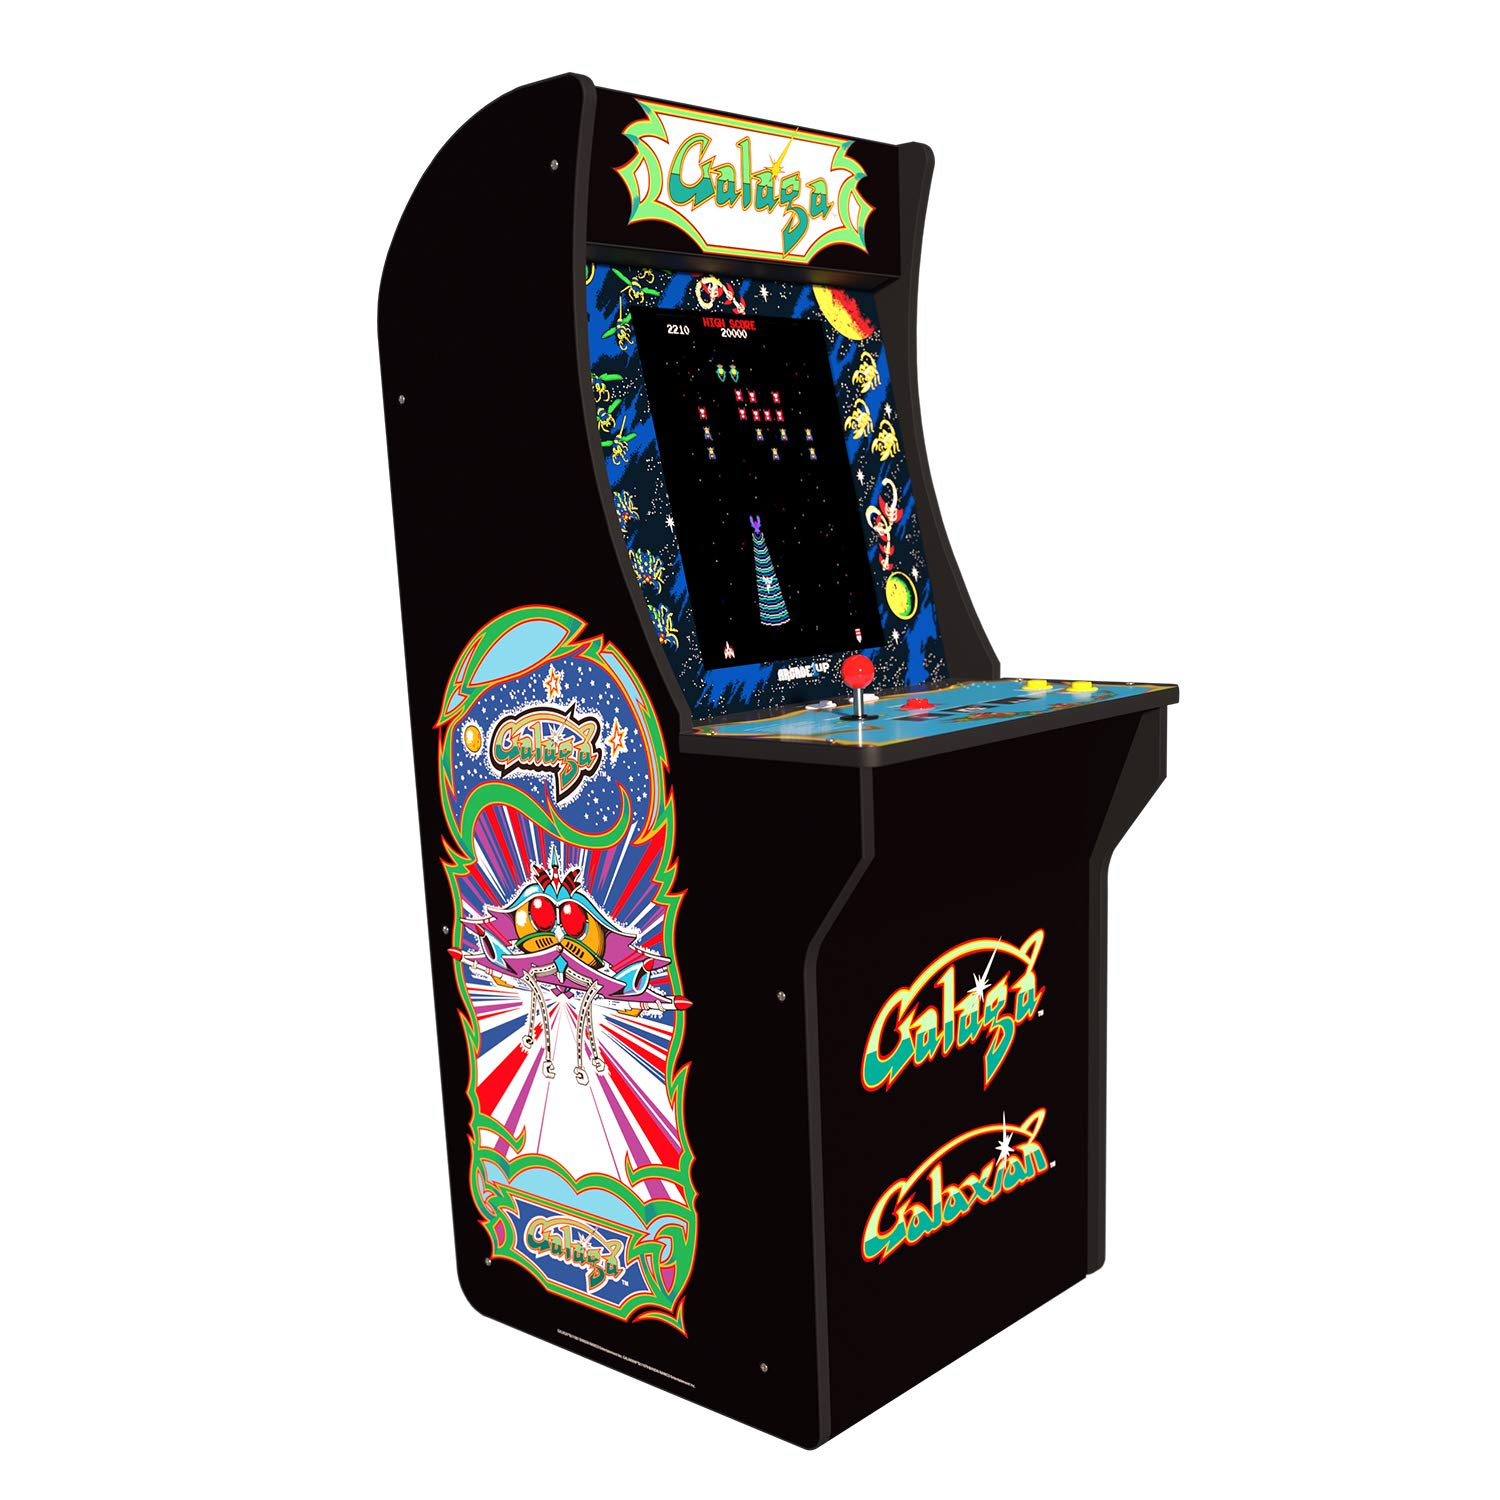 Arcade 1Up Galaga Deluxe Arcade System with Riser, 5 feet by Arcade1Up (Image #5)